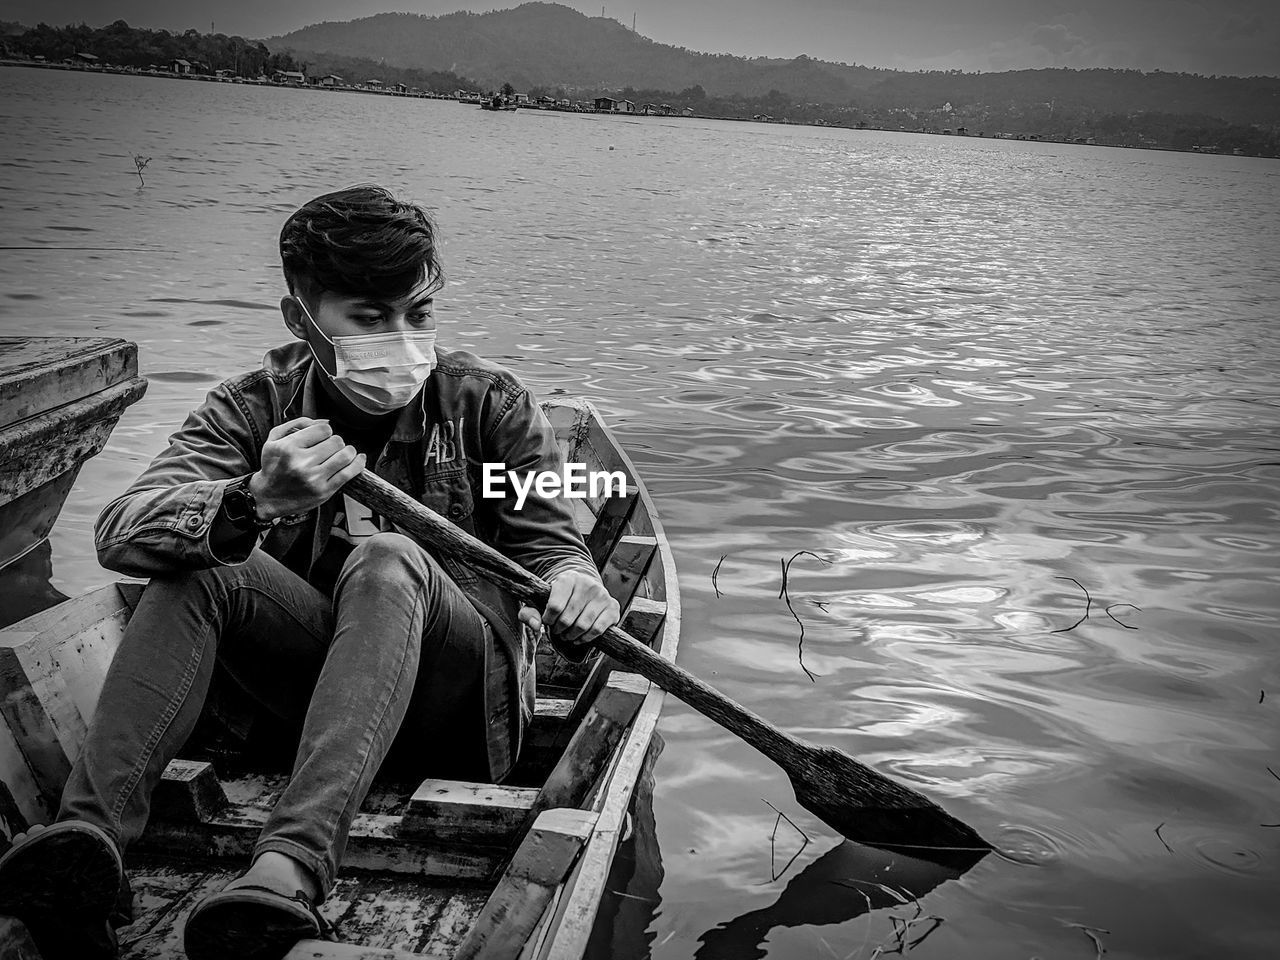 YOUNG MAN SITTING IN BOAT AT LAKE